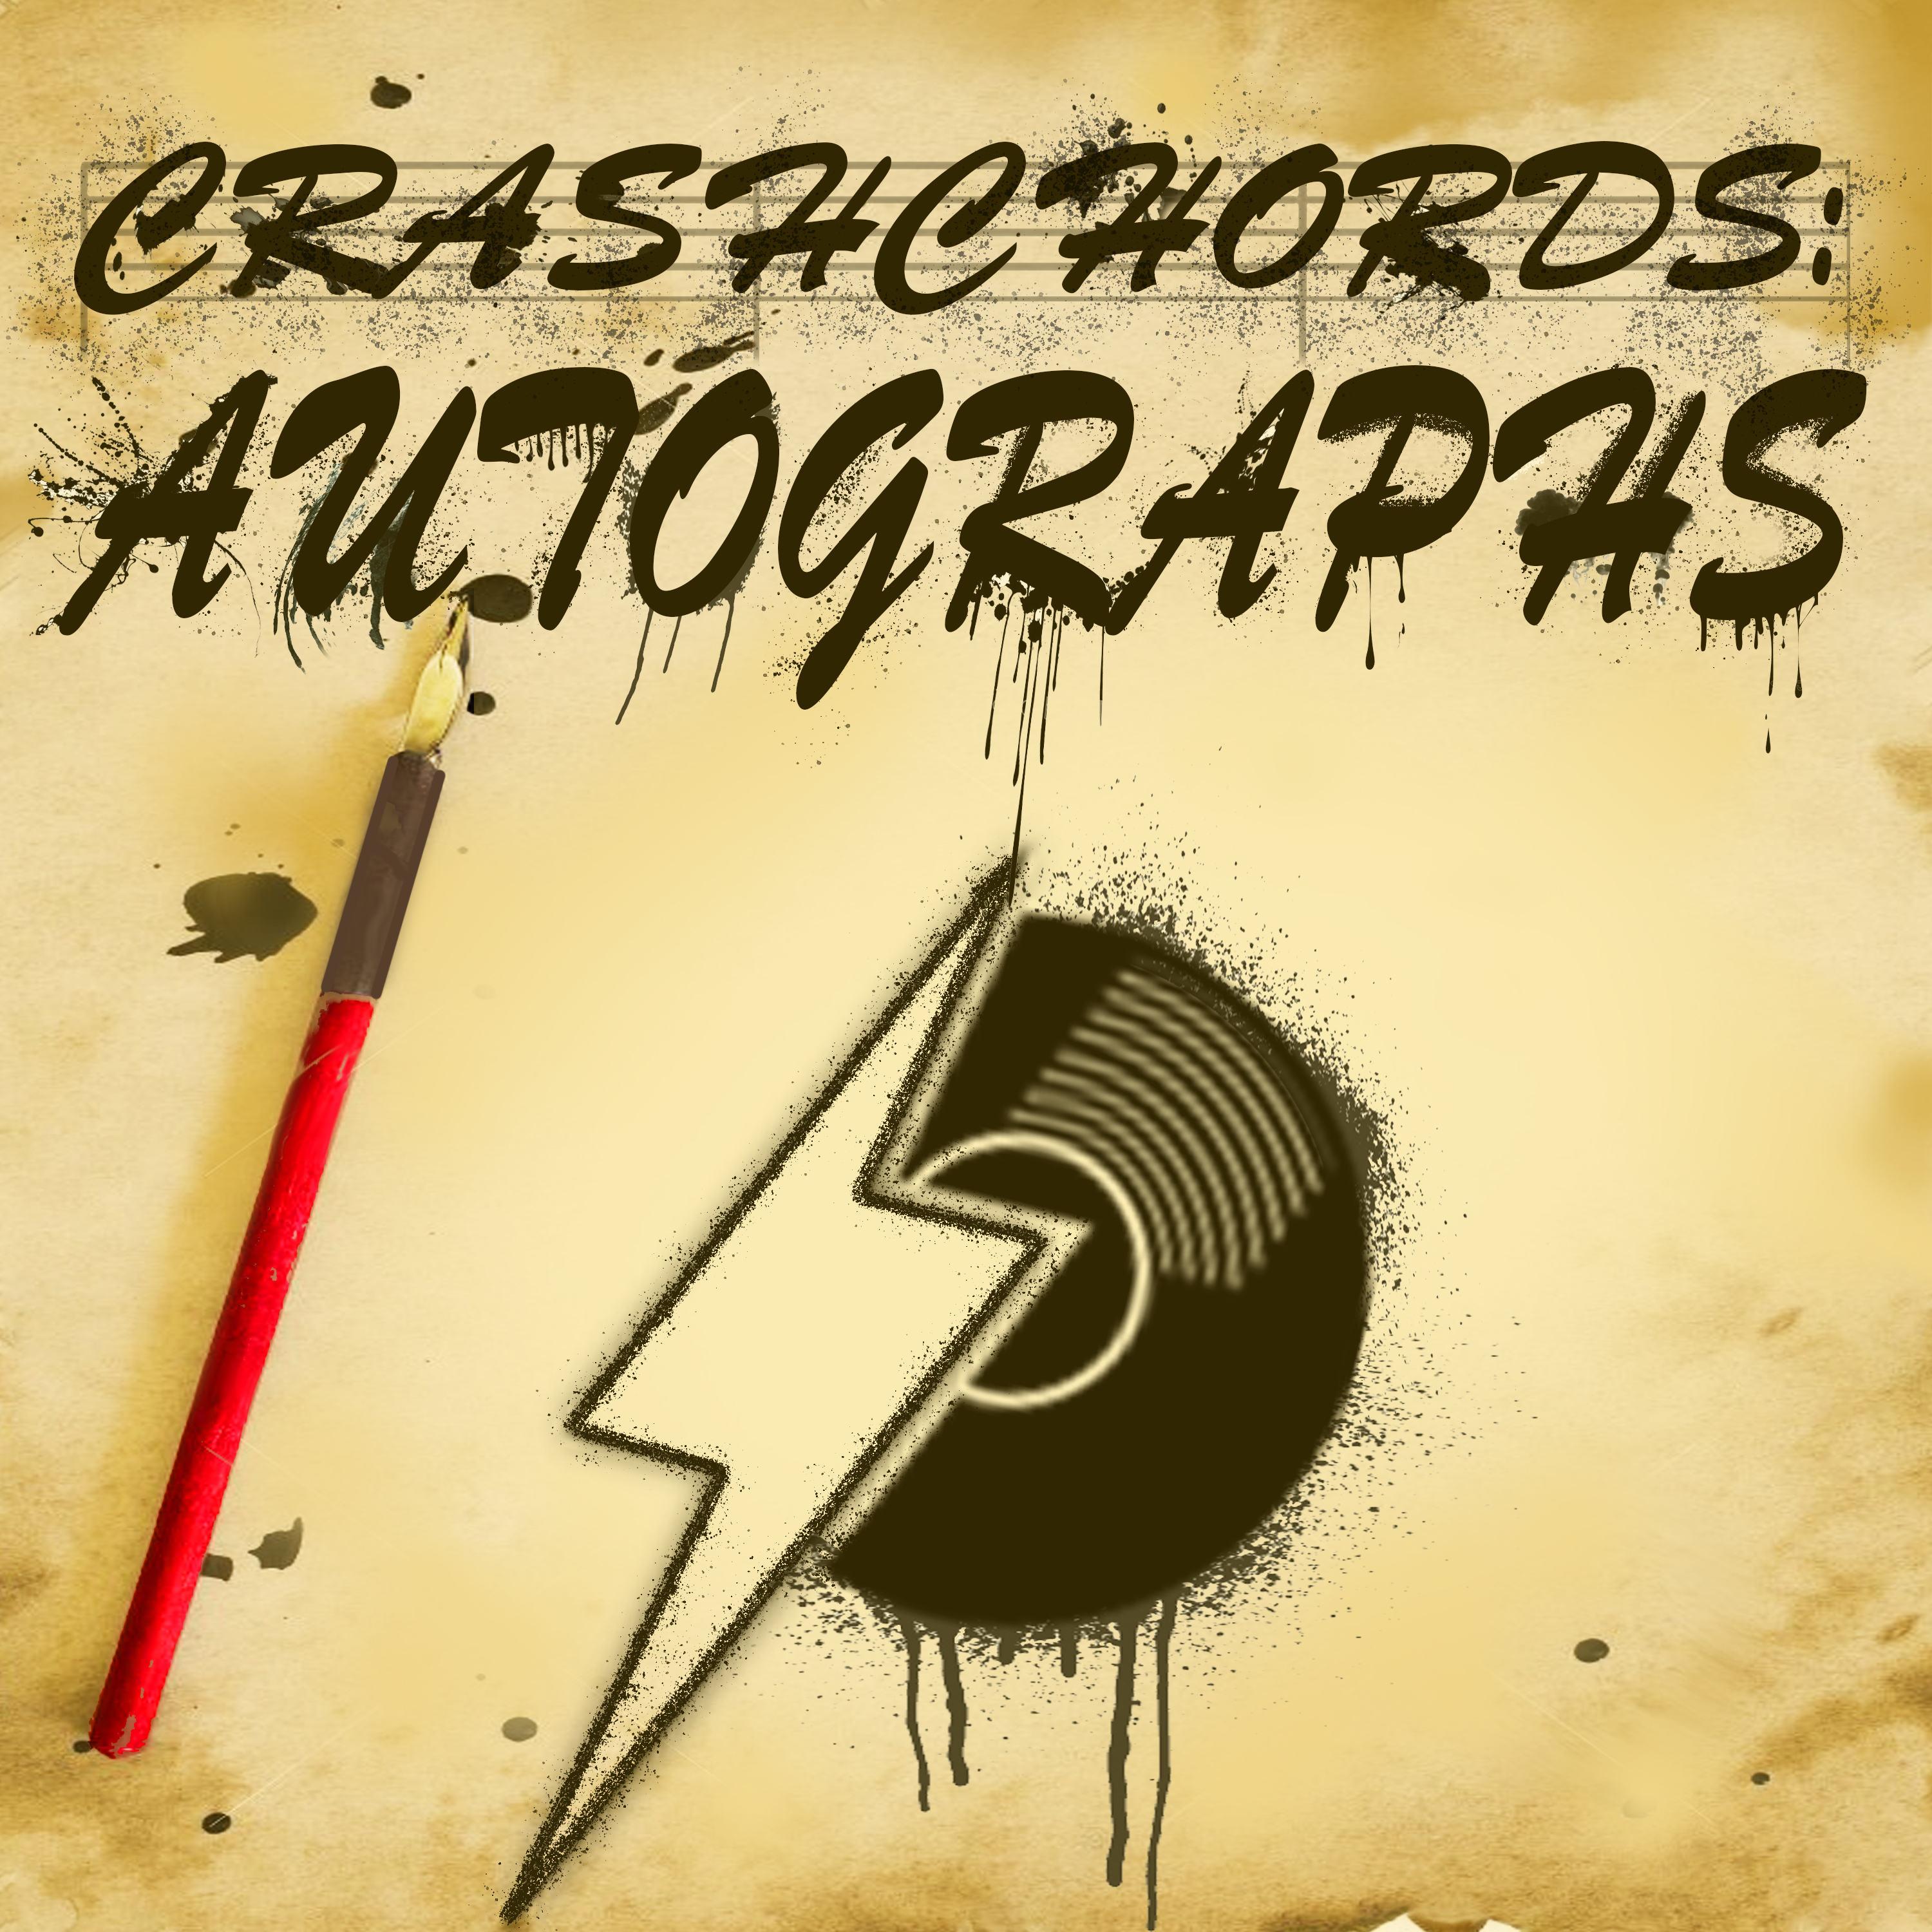 Crash Chords: Autographs